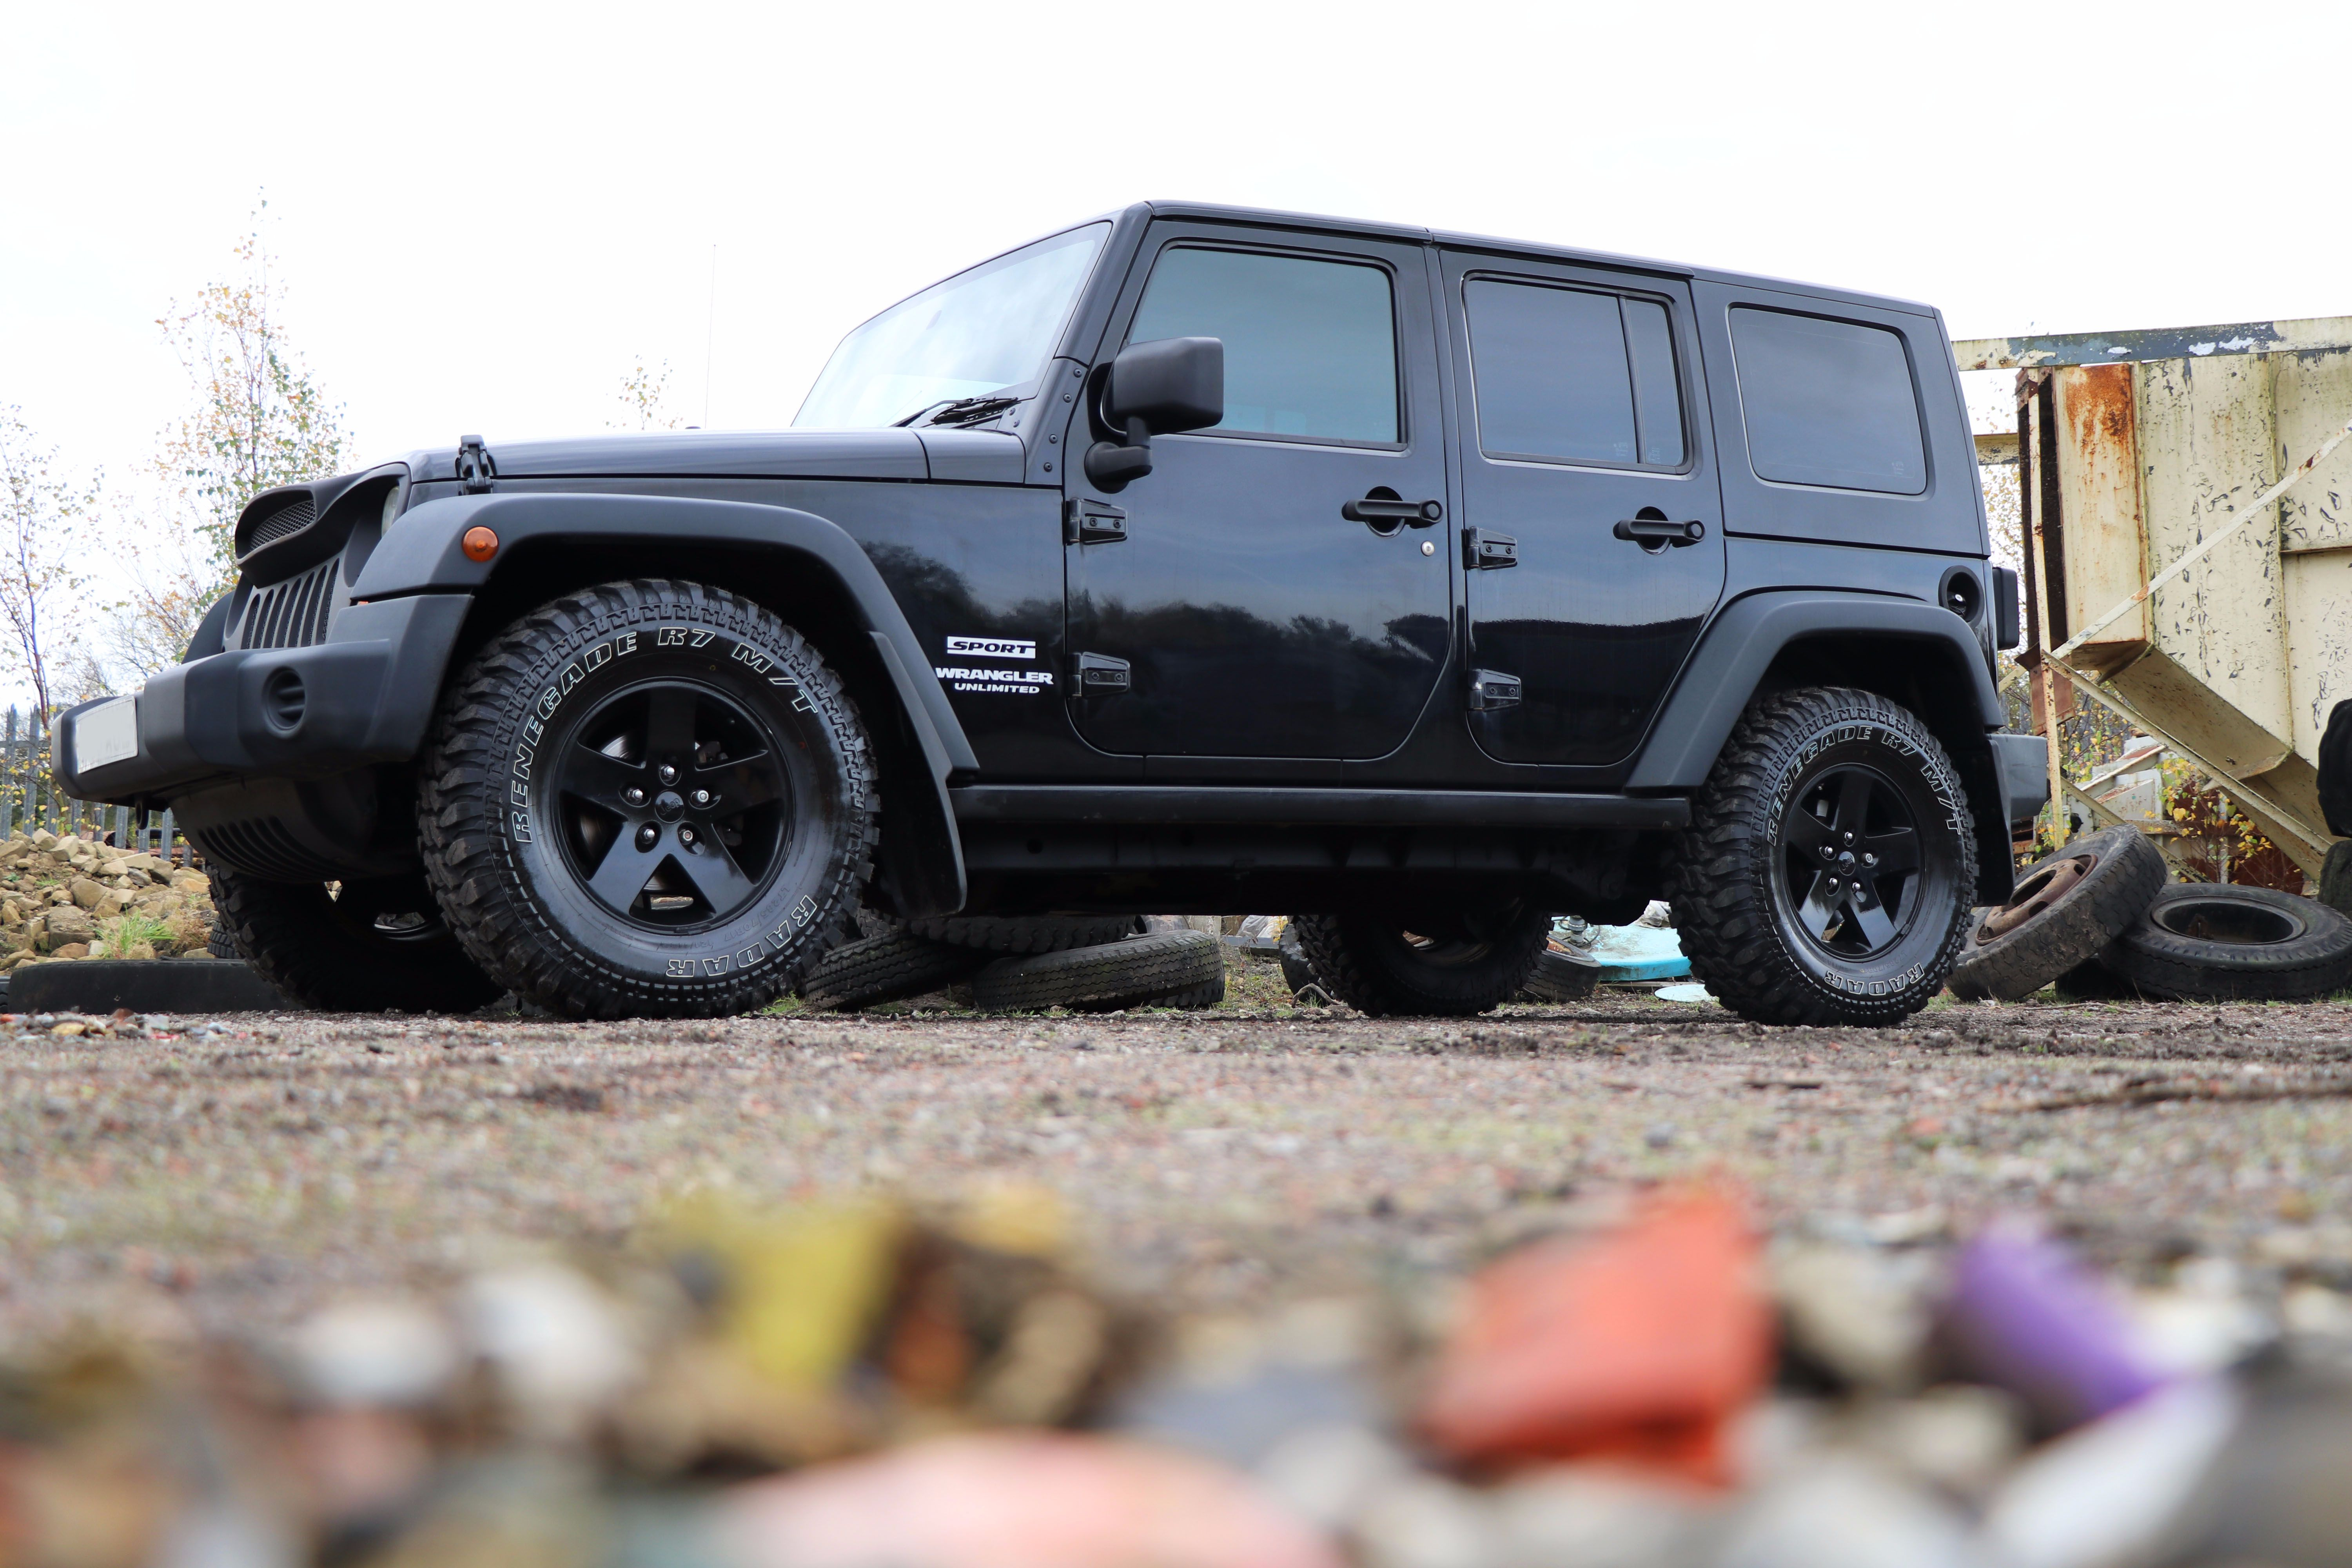 Introducing our SEEKER All Black Edition Jeep Wrangler styled by